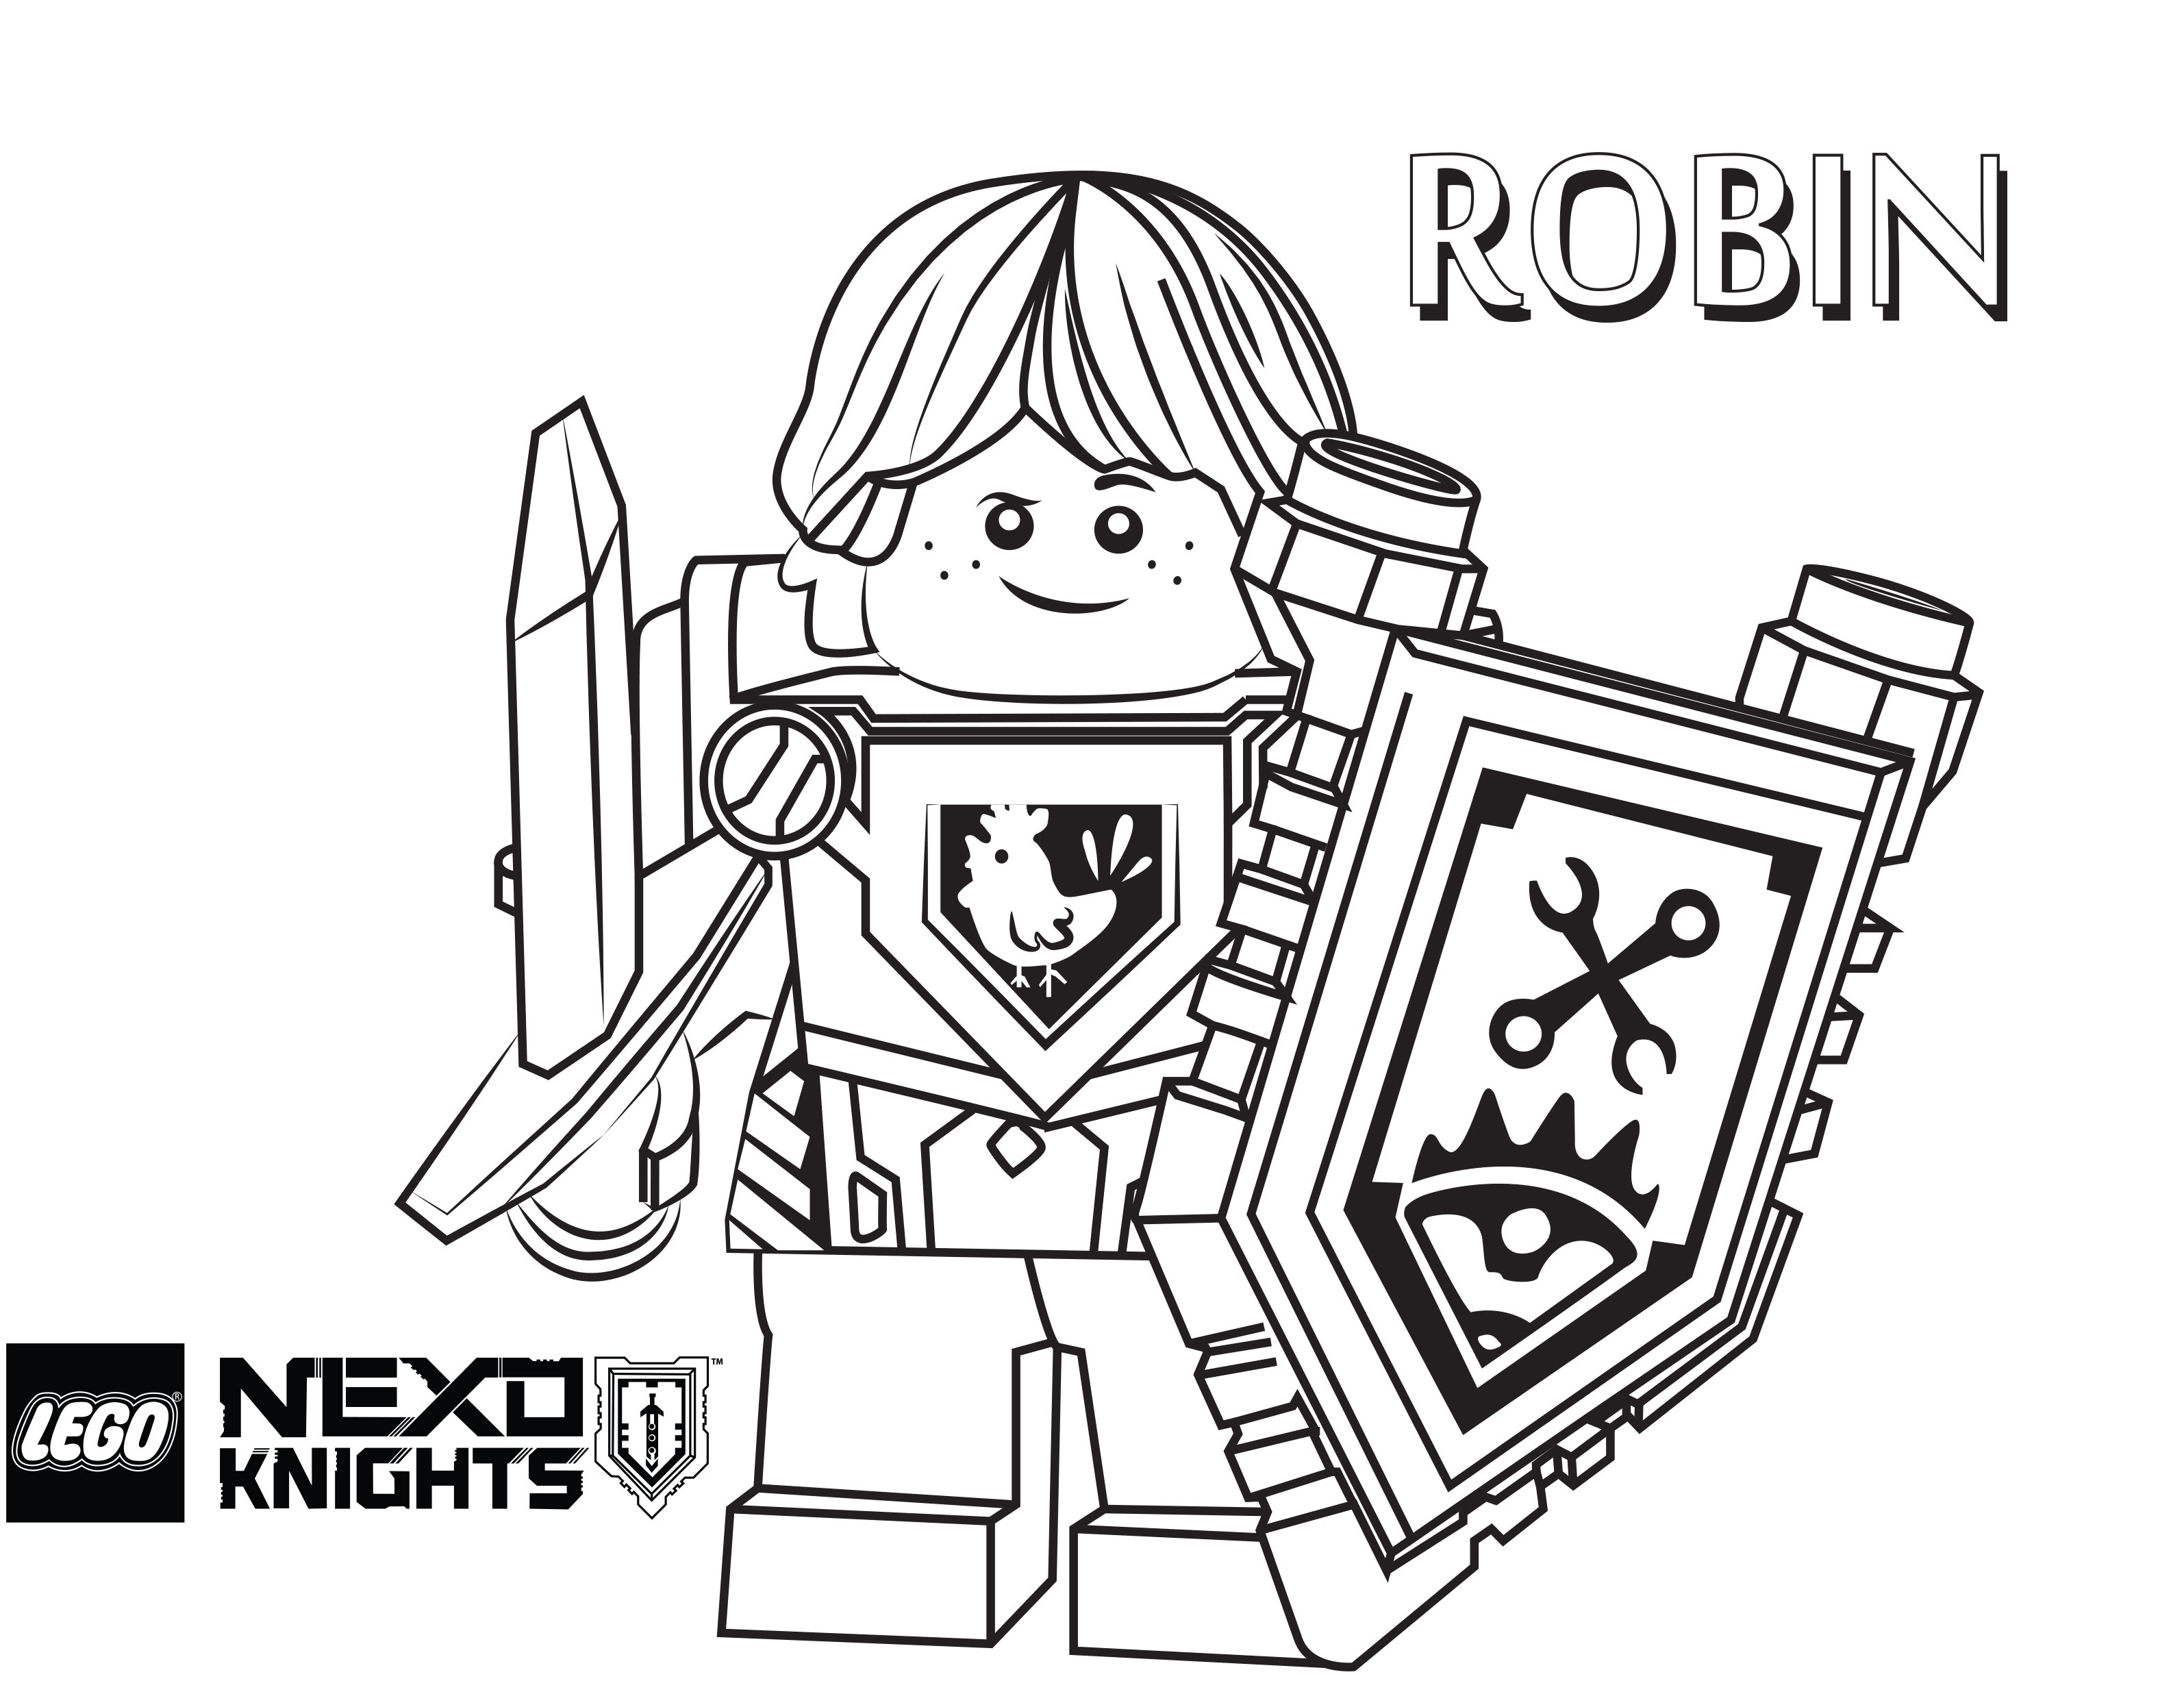 3189x2454 Lego Nexo Knights Coloring Pages Free Printable Incredible Lego